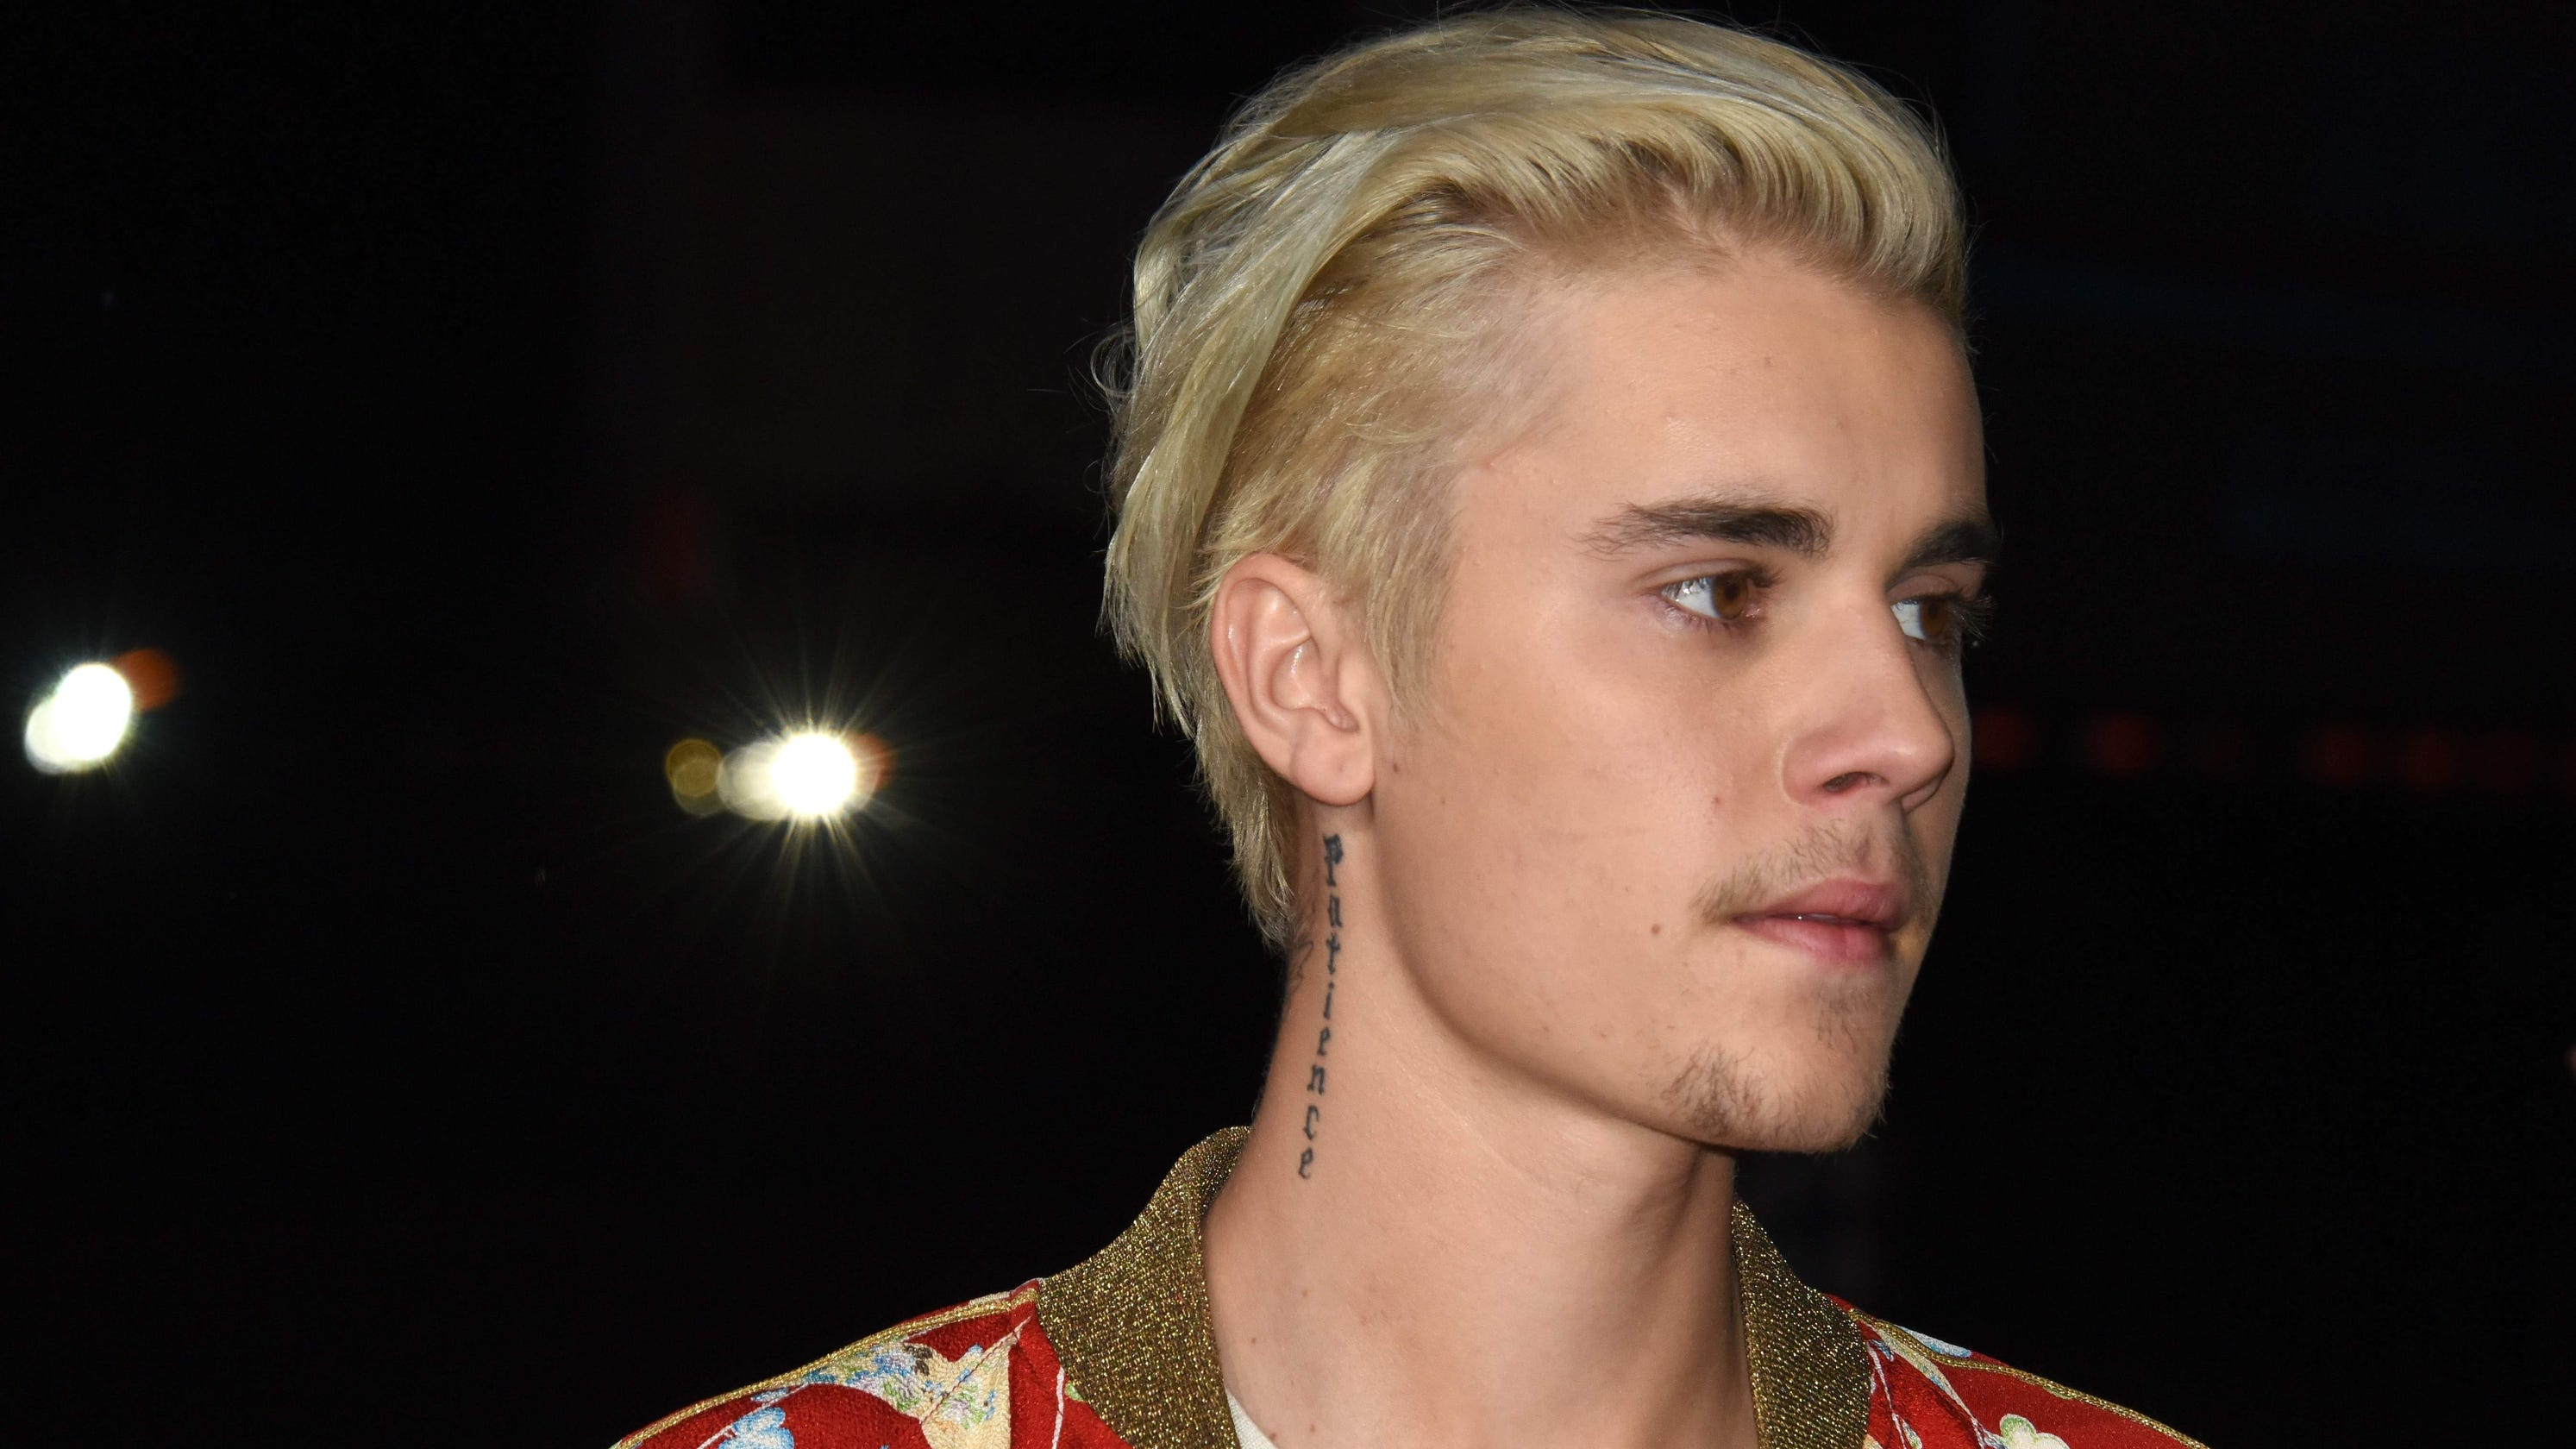 Justin Bieber Explains That Tweet About Challenging Tom Cruise To Fight In The Octagon